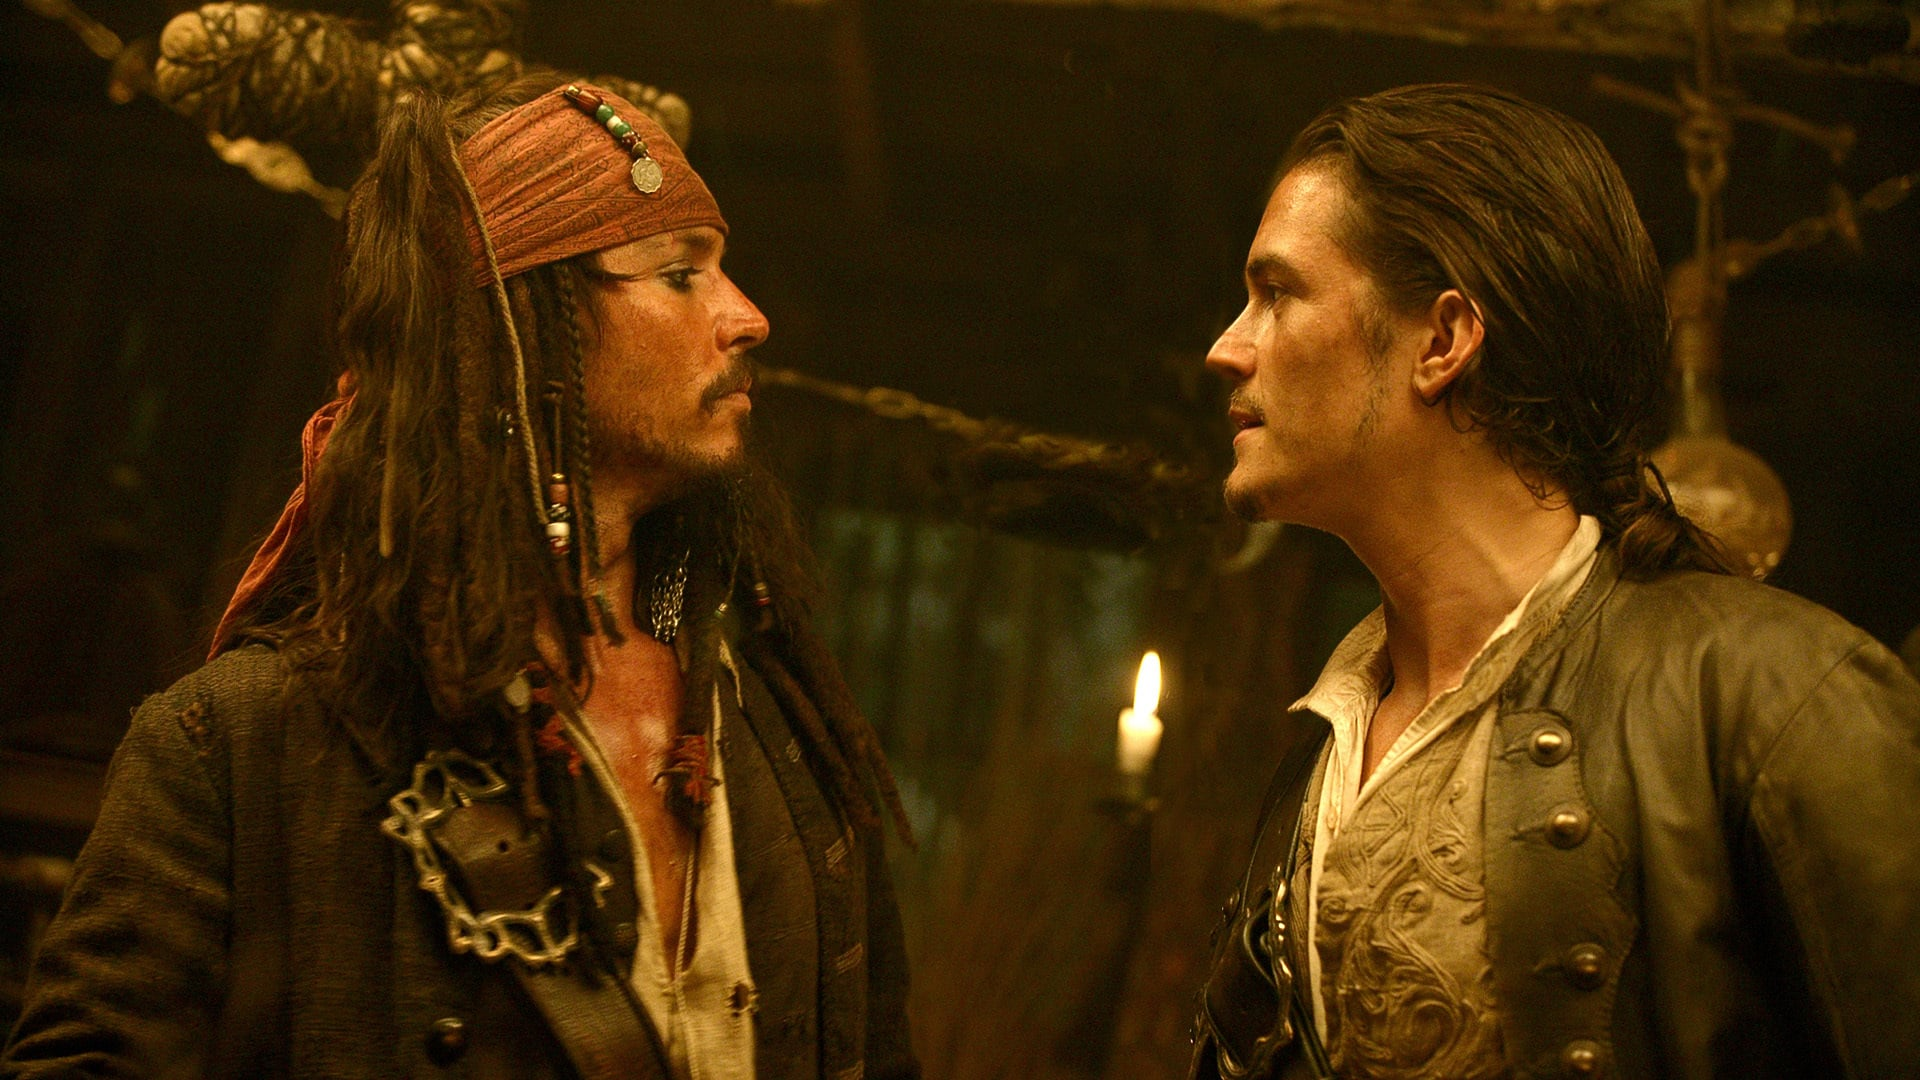 Johnny Depp as Captain Jack Sparrow in Pirates of the Caribbean: The Curse of The Black Pearl